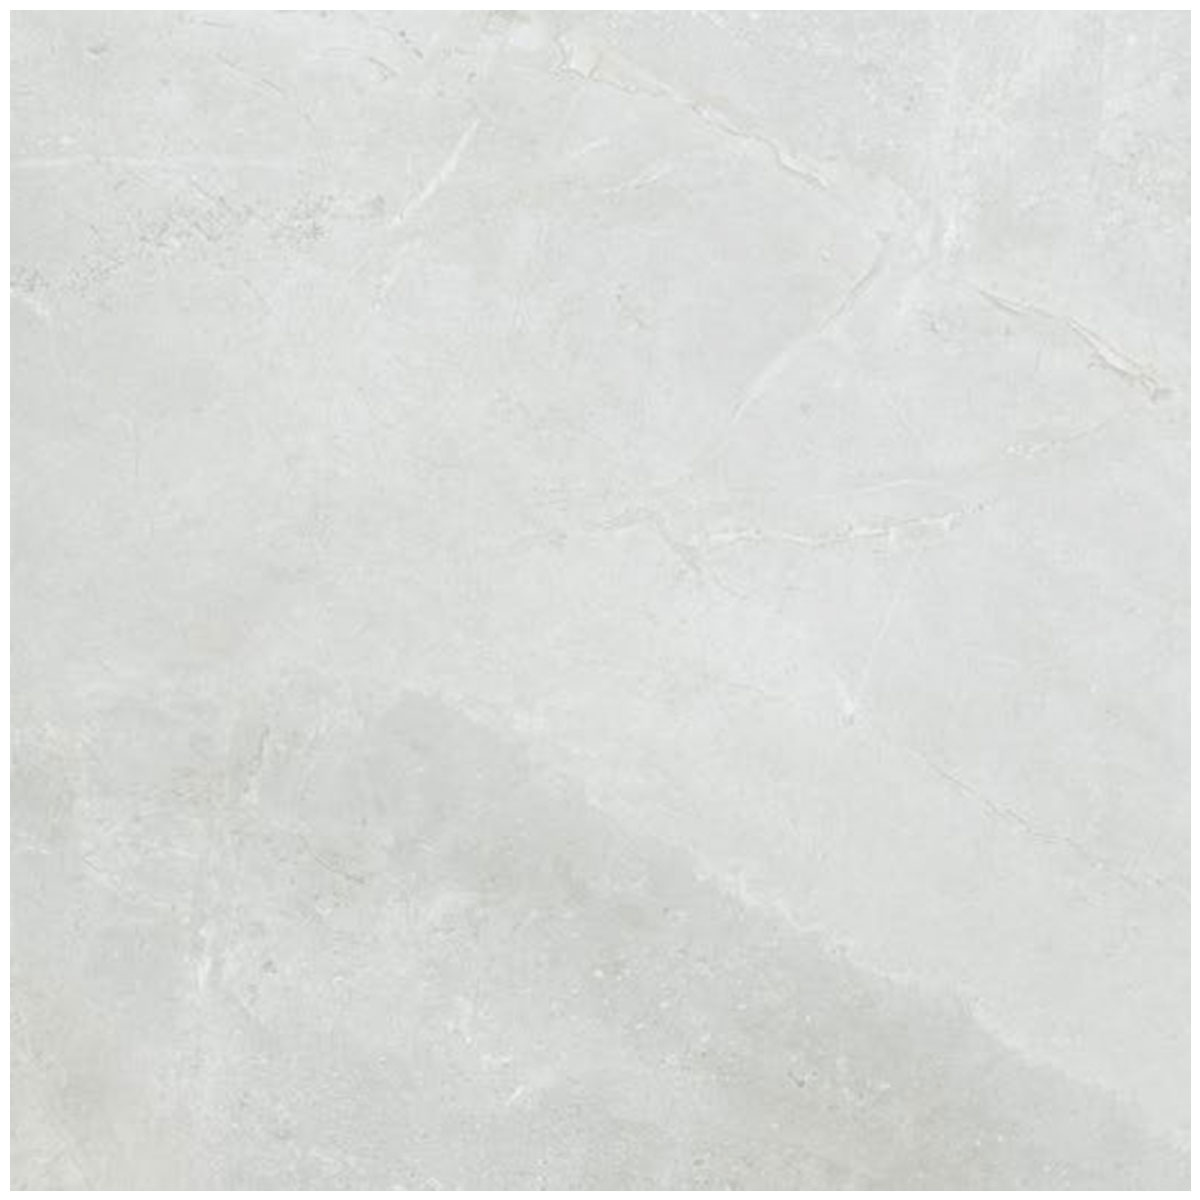 Chiswick-white-honed-600x600-marble-look-tiles - Stone3